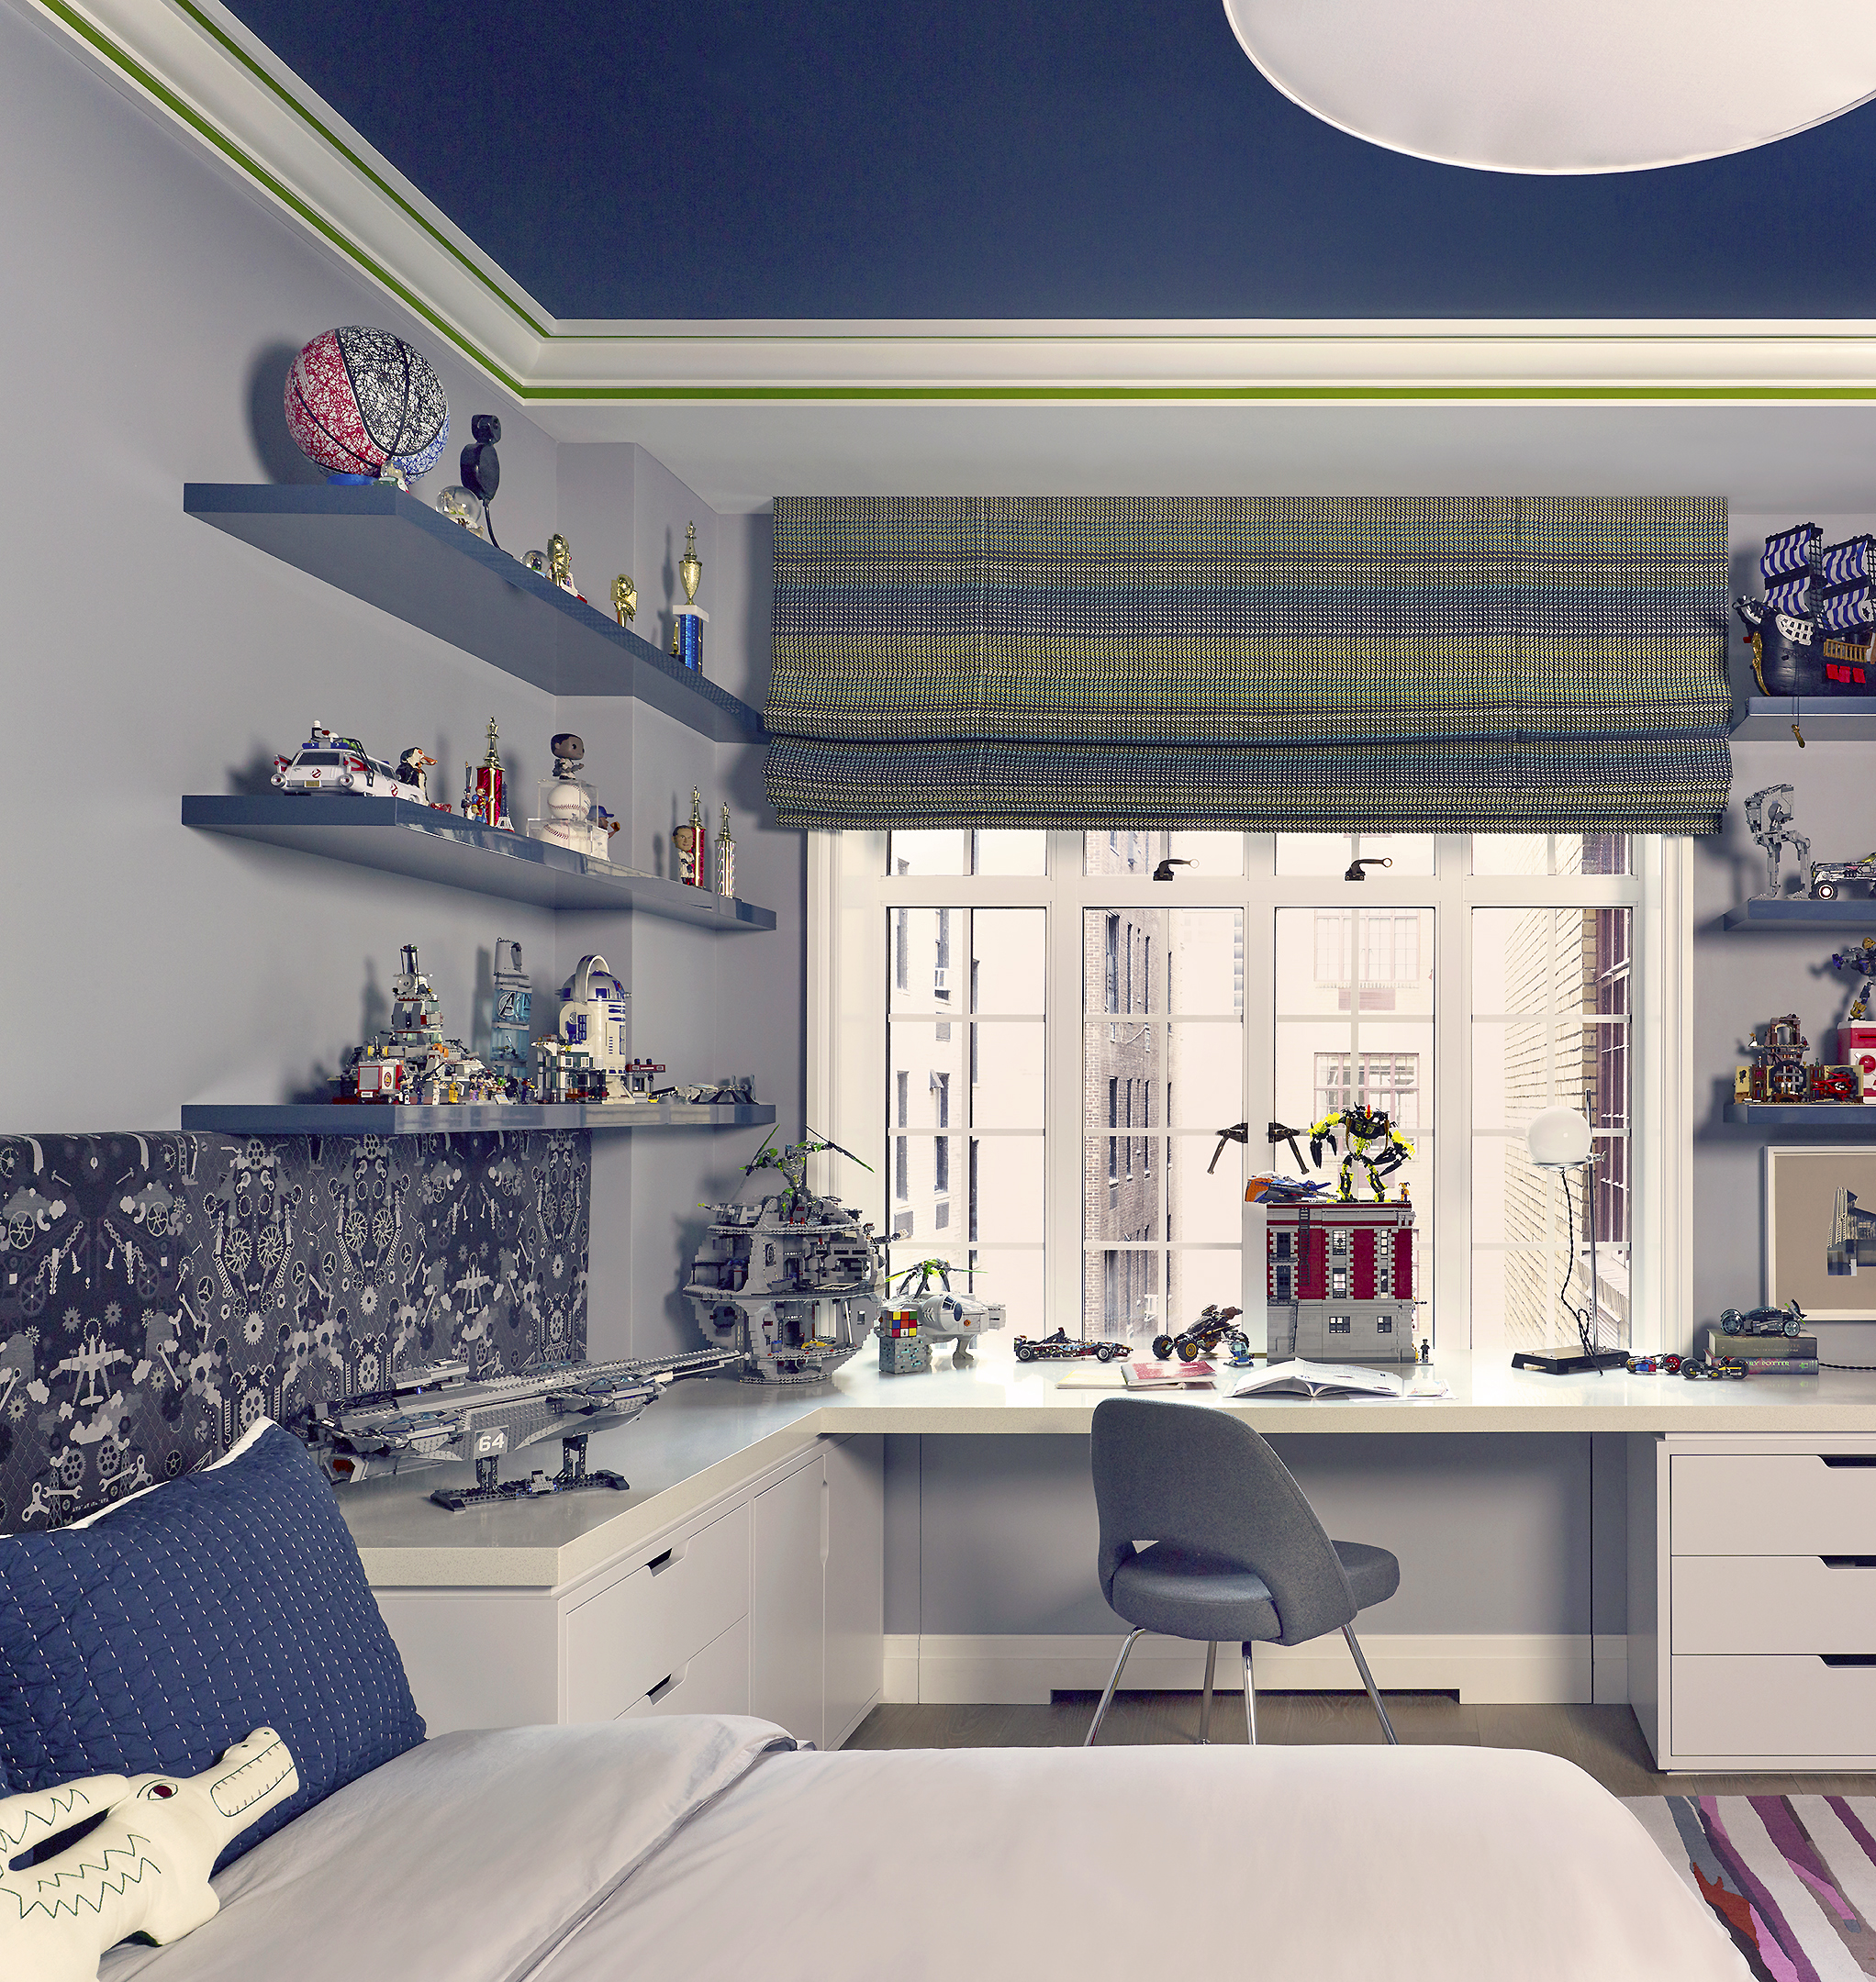 Stonefox 115 East 67th Street Son's Room MEP designed by 2L Engineering